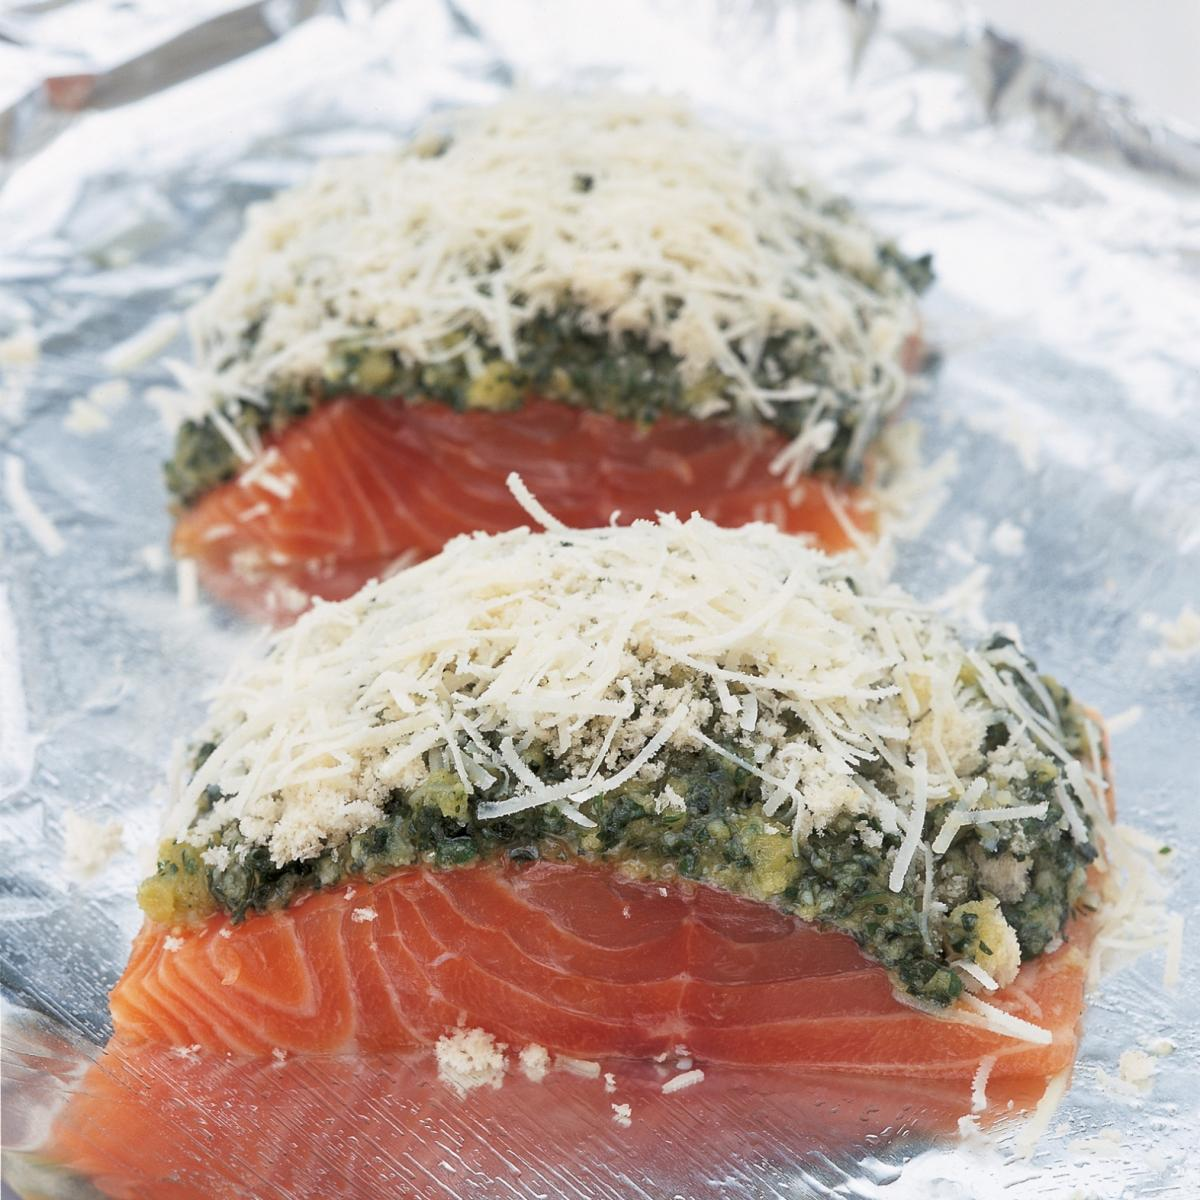 A picture of Delia's Roasted Salmon Fillets with a Crusted Pecorino and Pesto Topping recipe